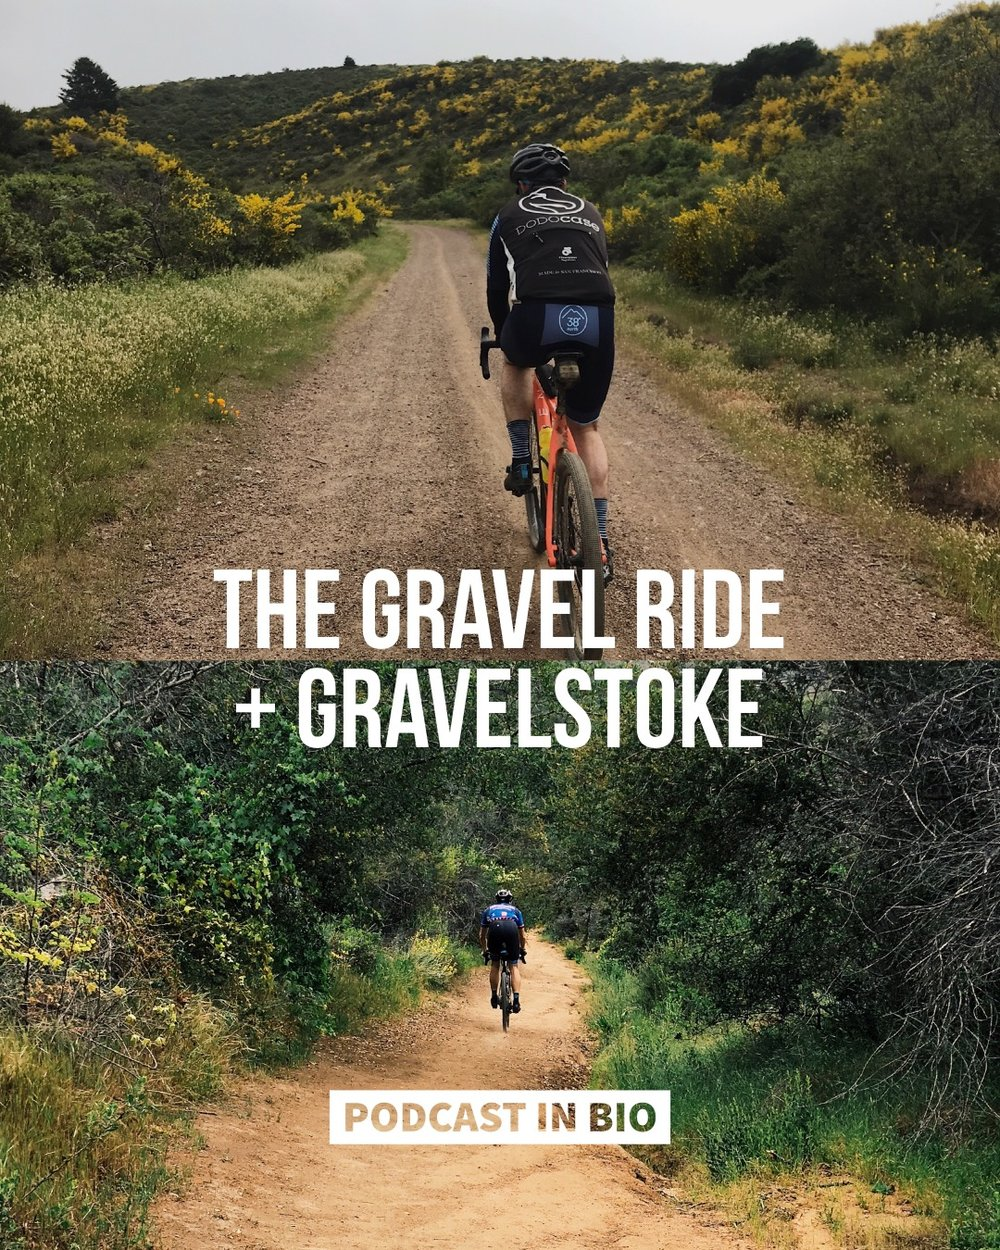 gravel ride podcast.JPG